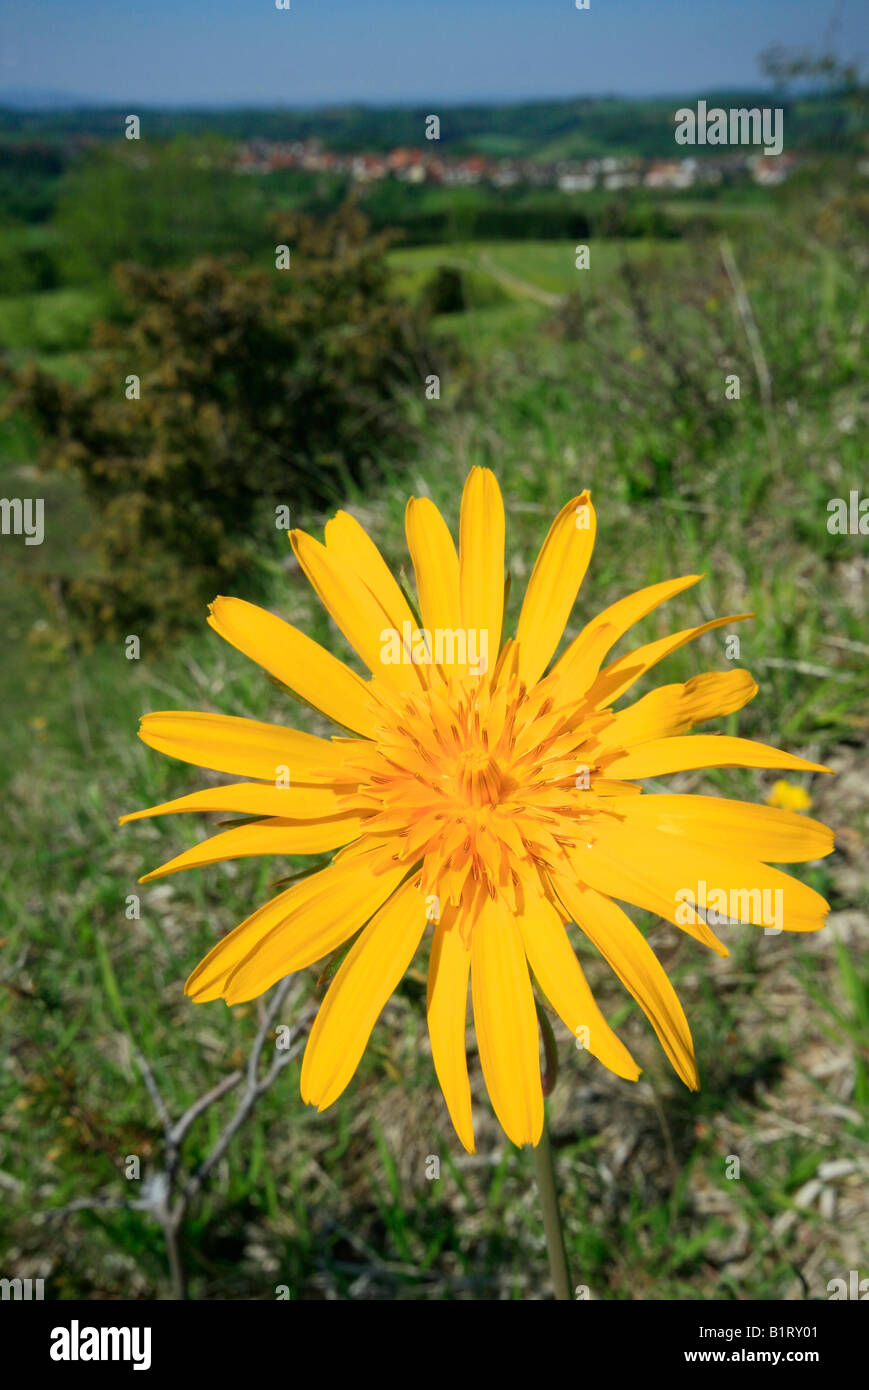 Meadow Salsify or Showy Goat's-beard or Jack-go-to-bed-at-noon (Tragopogon pratensis) in front of green landscape, - Stock Image